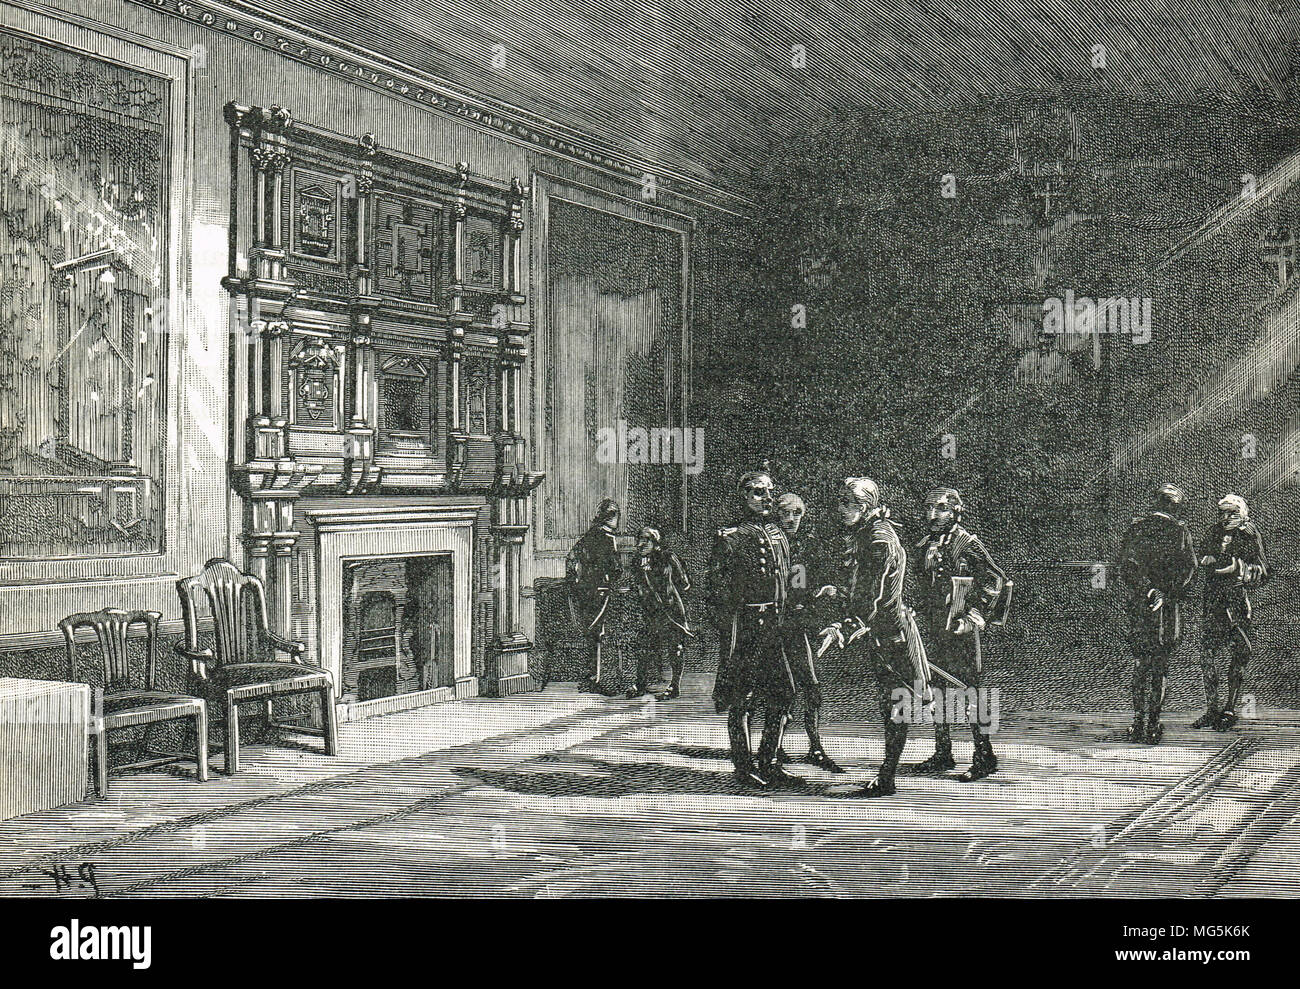 The Jerusalem Chamber, Westminster Abbey, London England - Stock Image